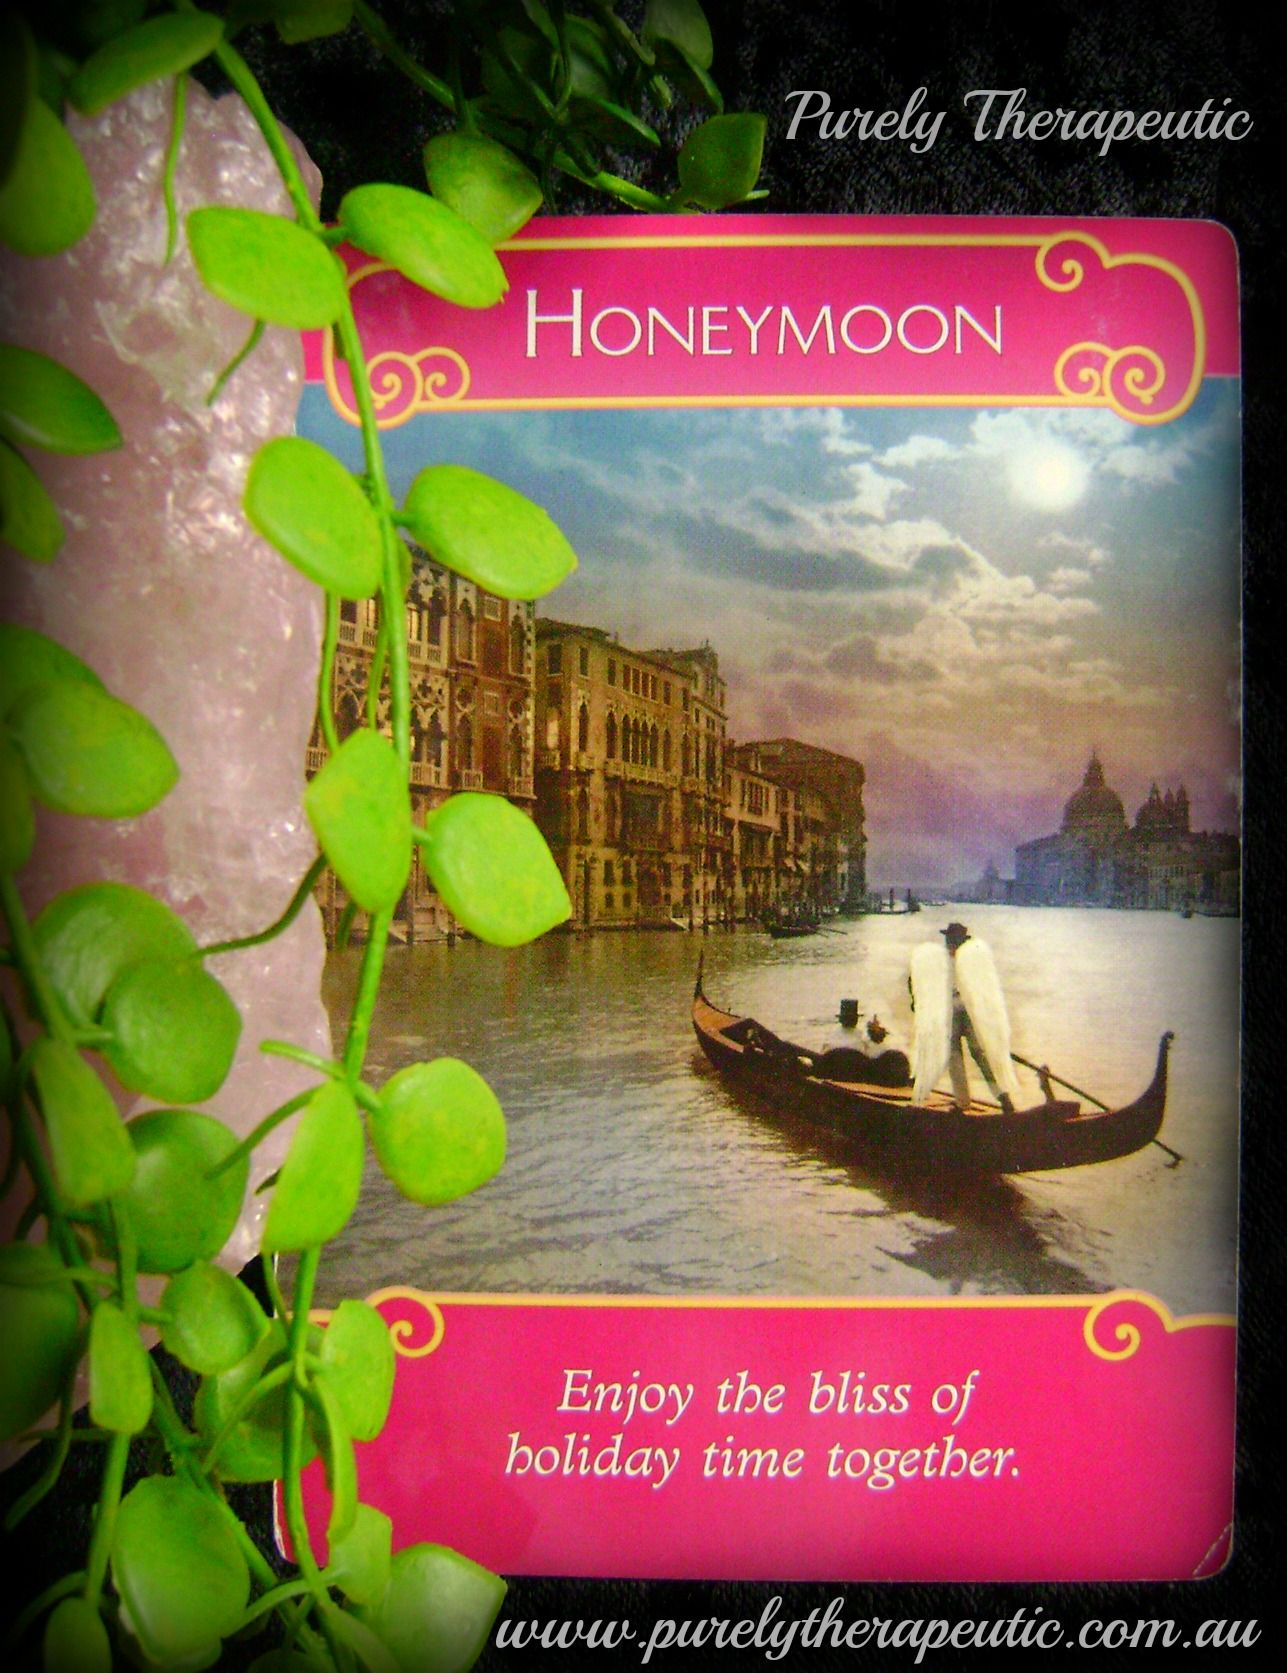 Honeymoon enjoy the bliss of holiday time together the